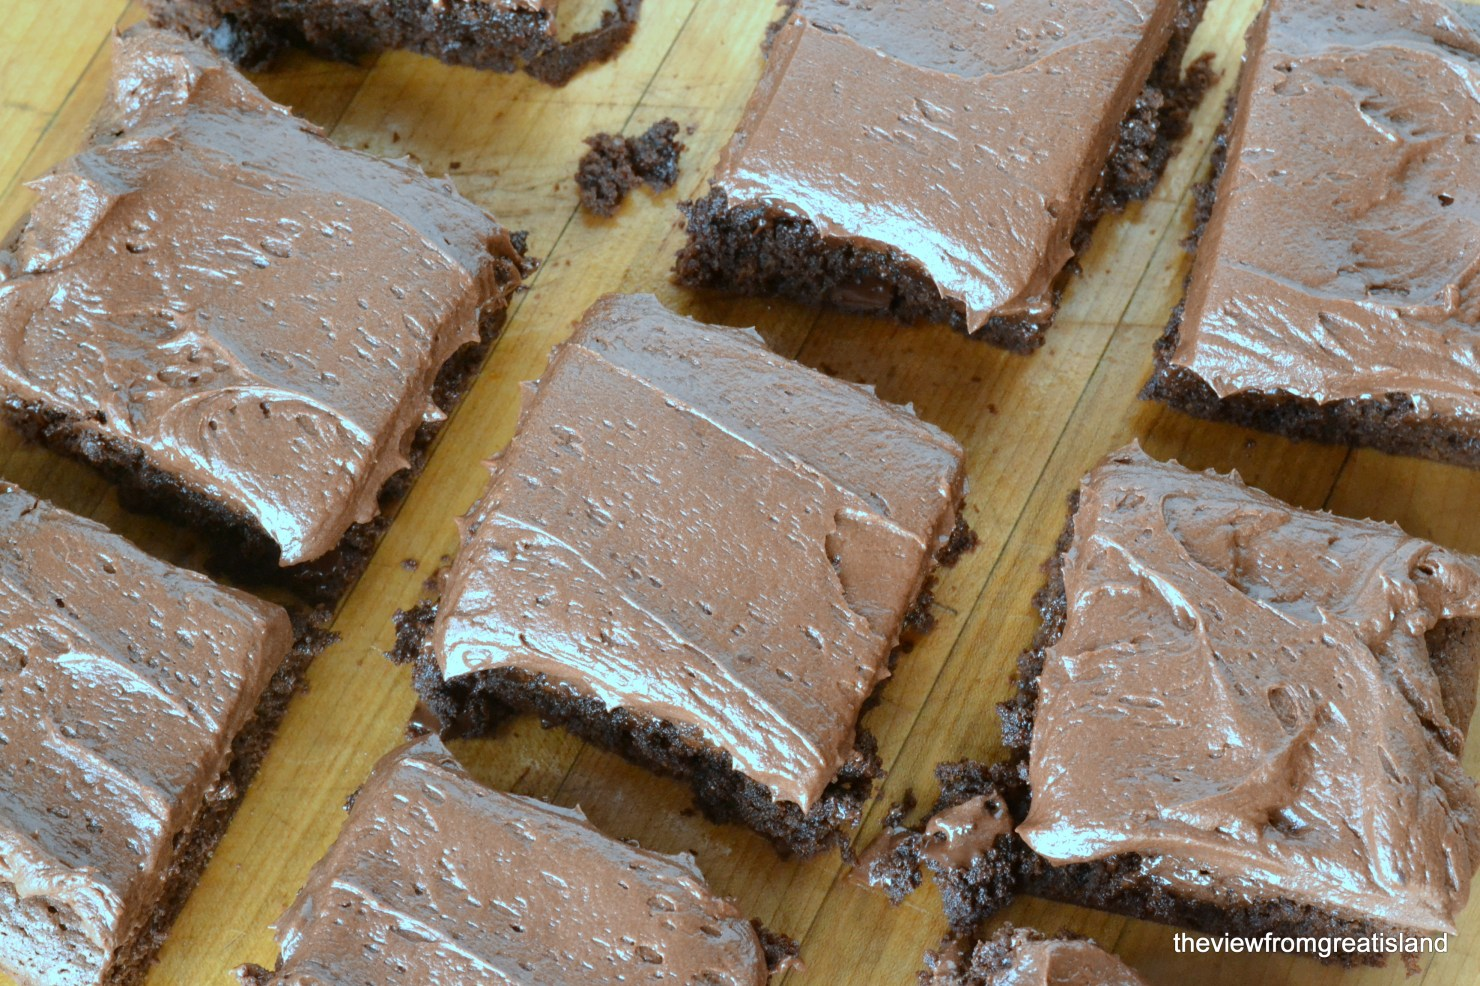 Chocolate Fudge Brownies with Chocolate Buttercream on a wooden cutting board